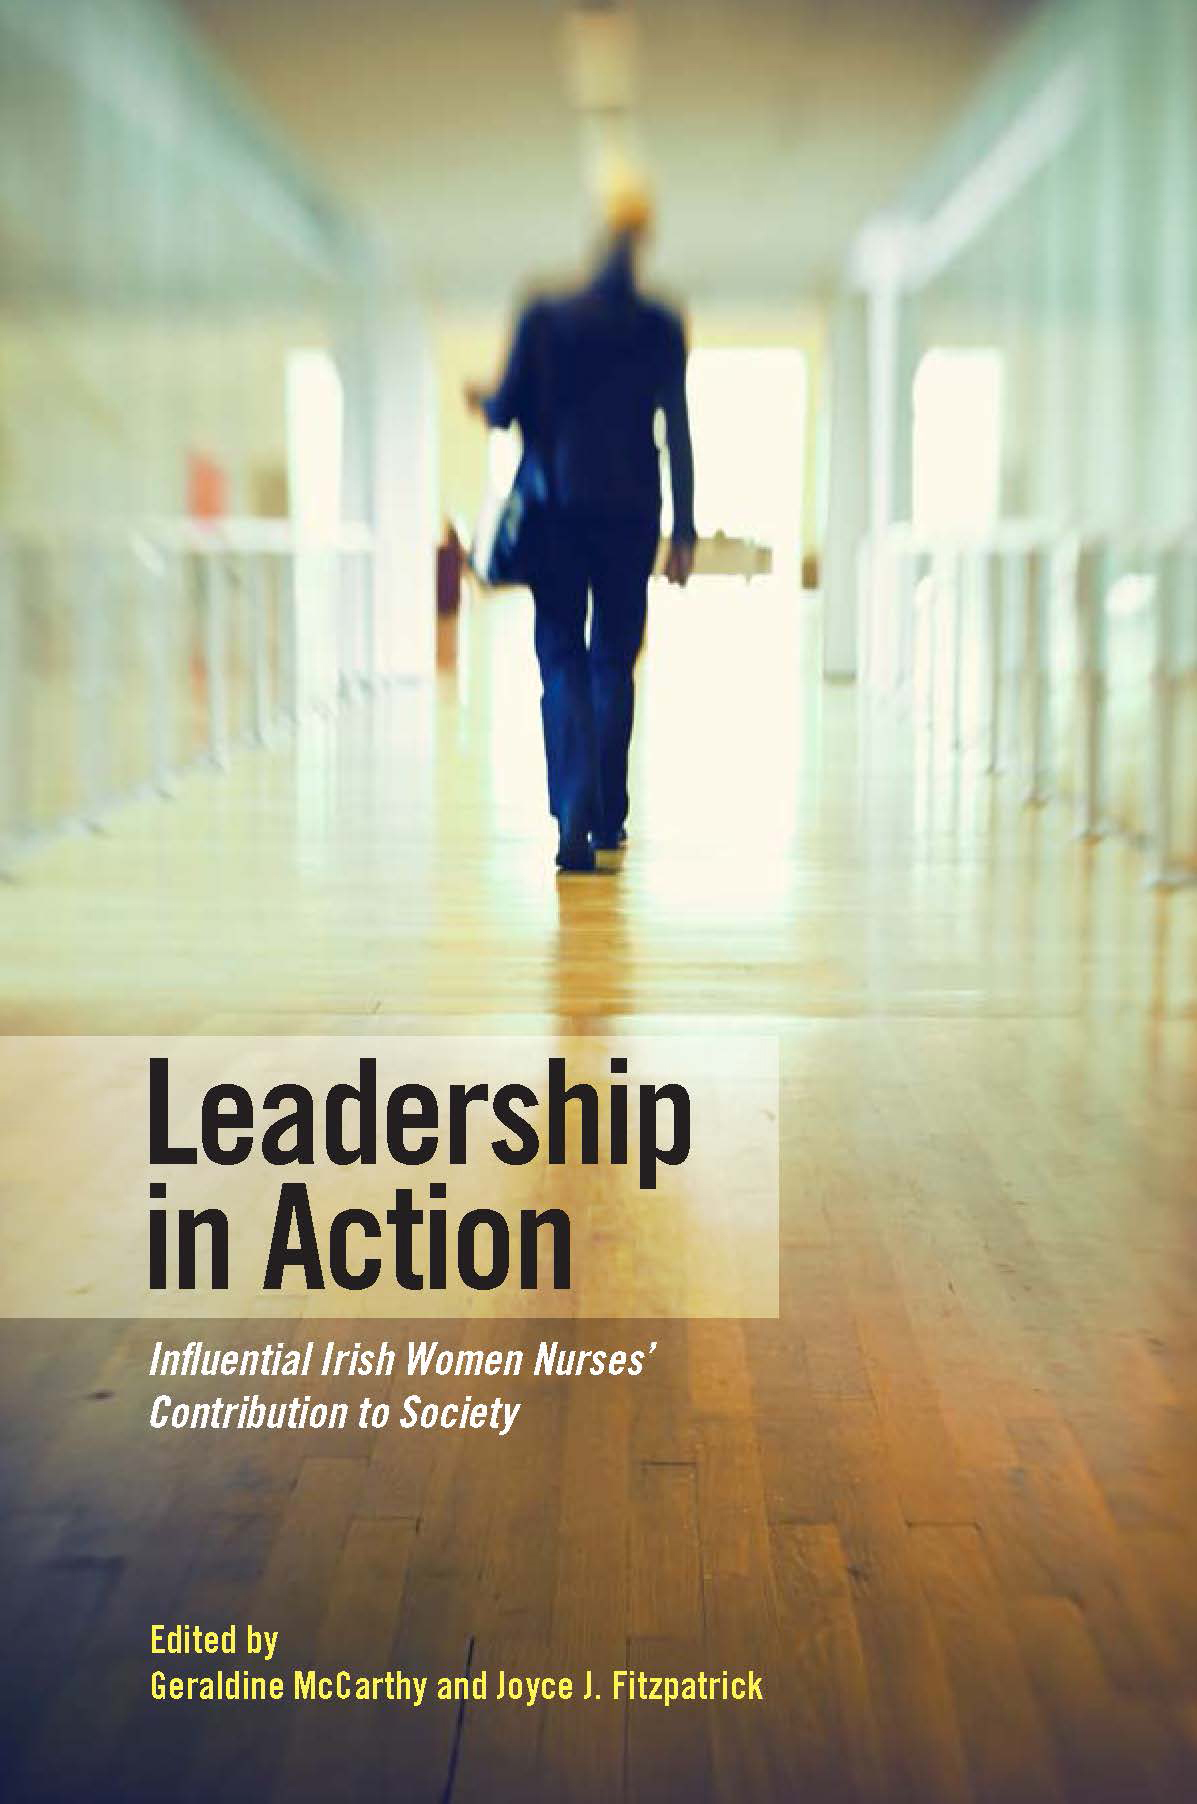 Leadership in Action: Influential Irish Women Nurses' Contribution to Society